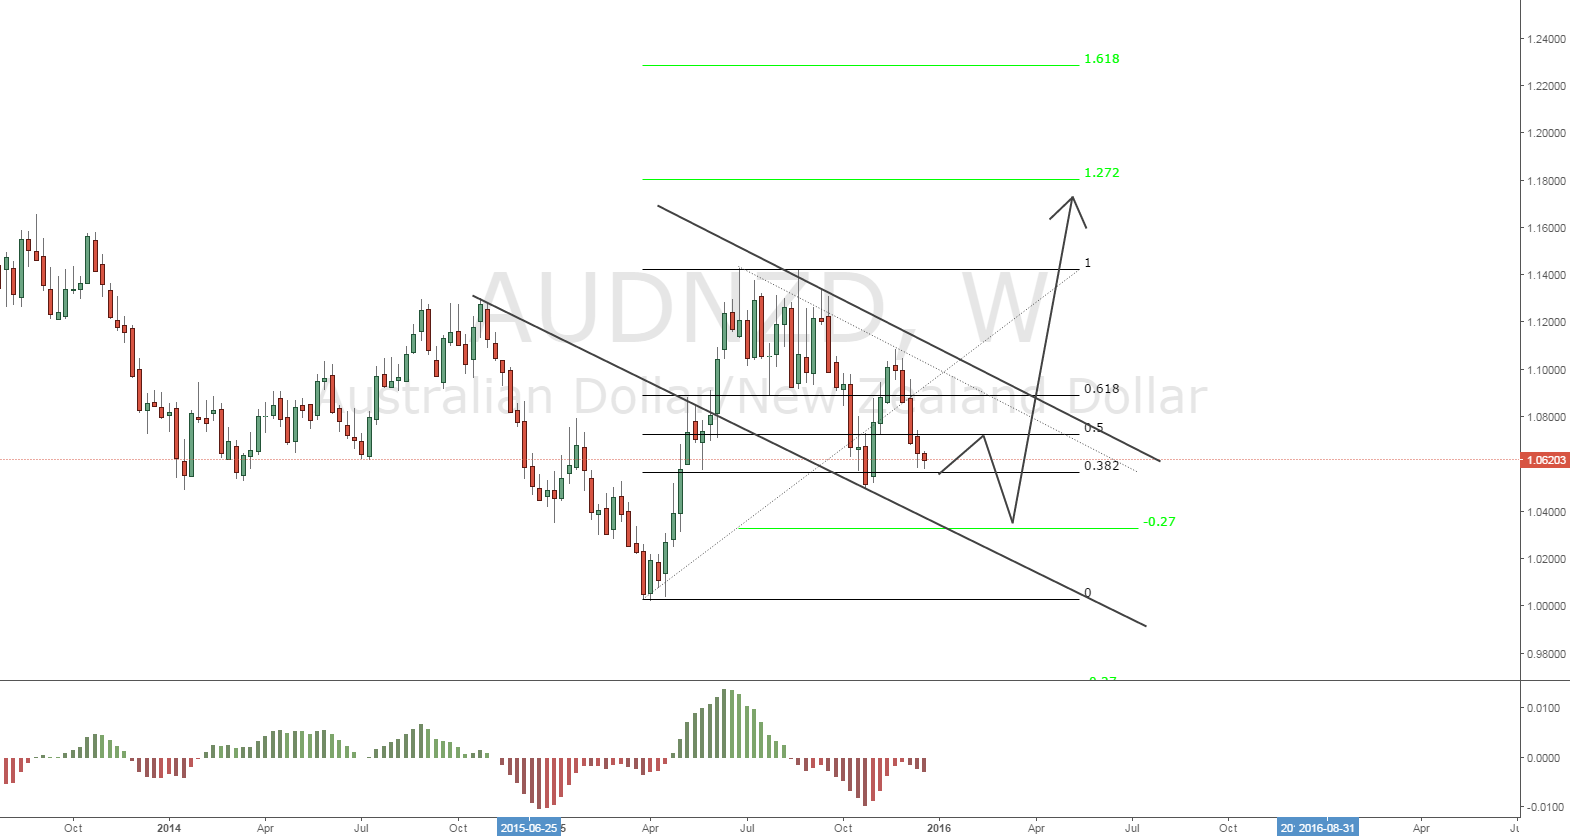 AUDNZD Proyecting the 1.2000 Level